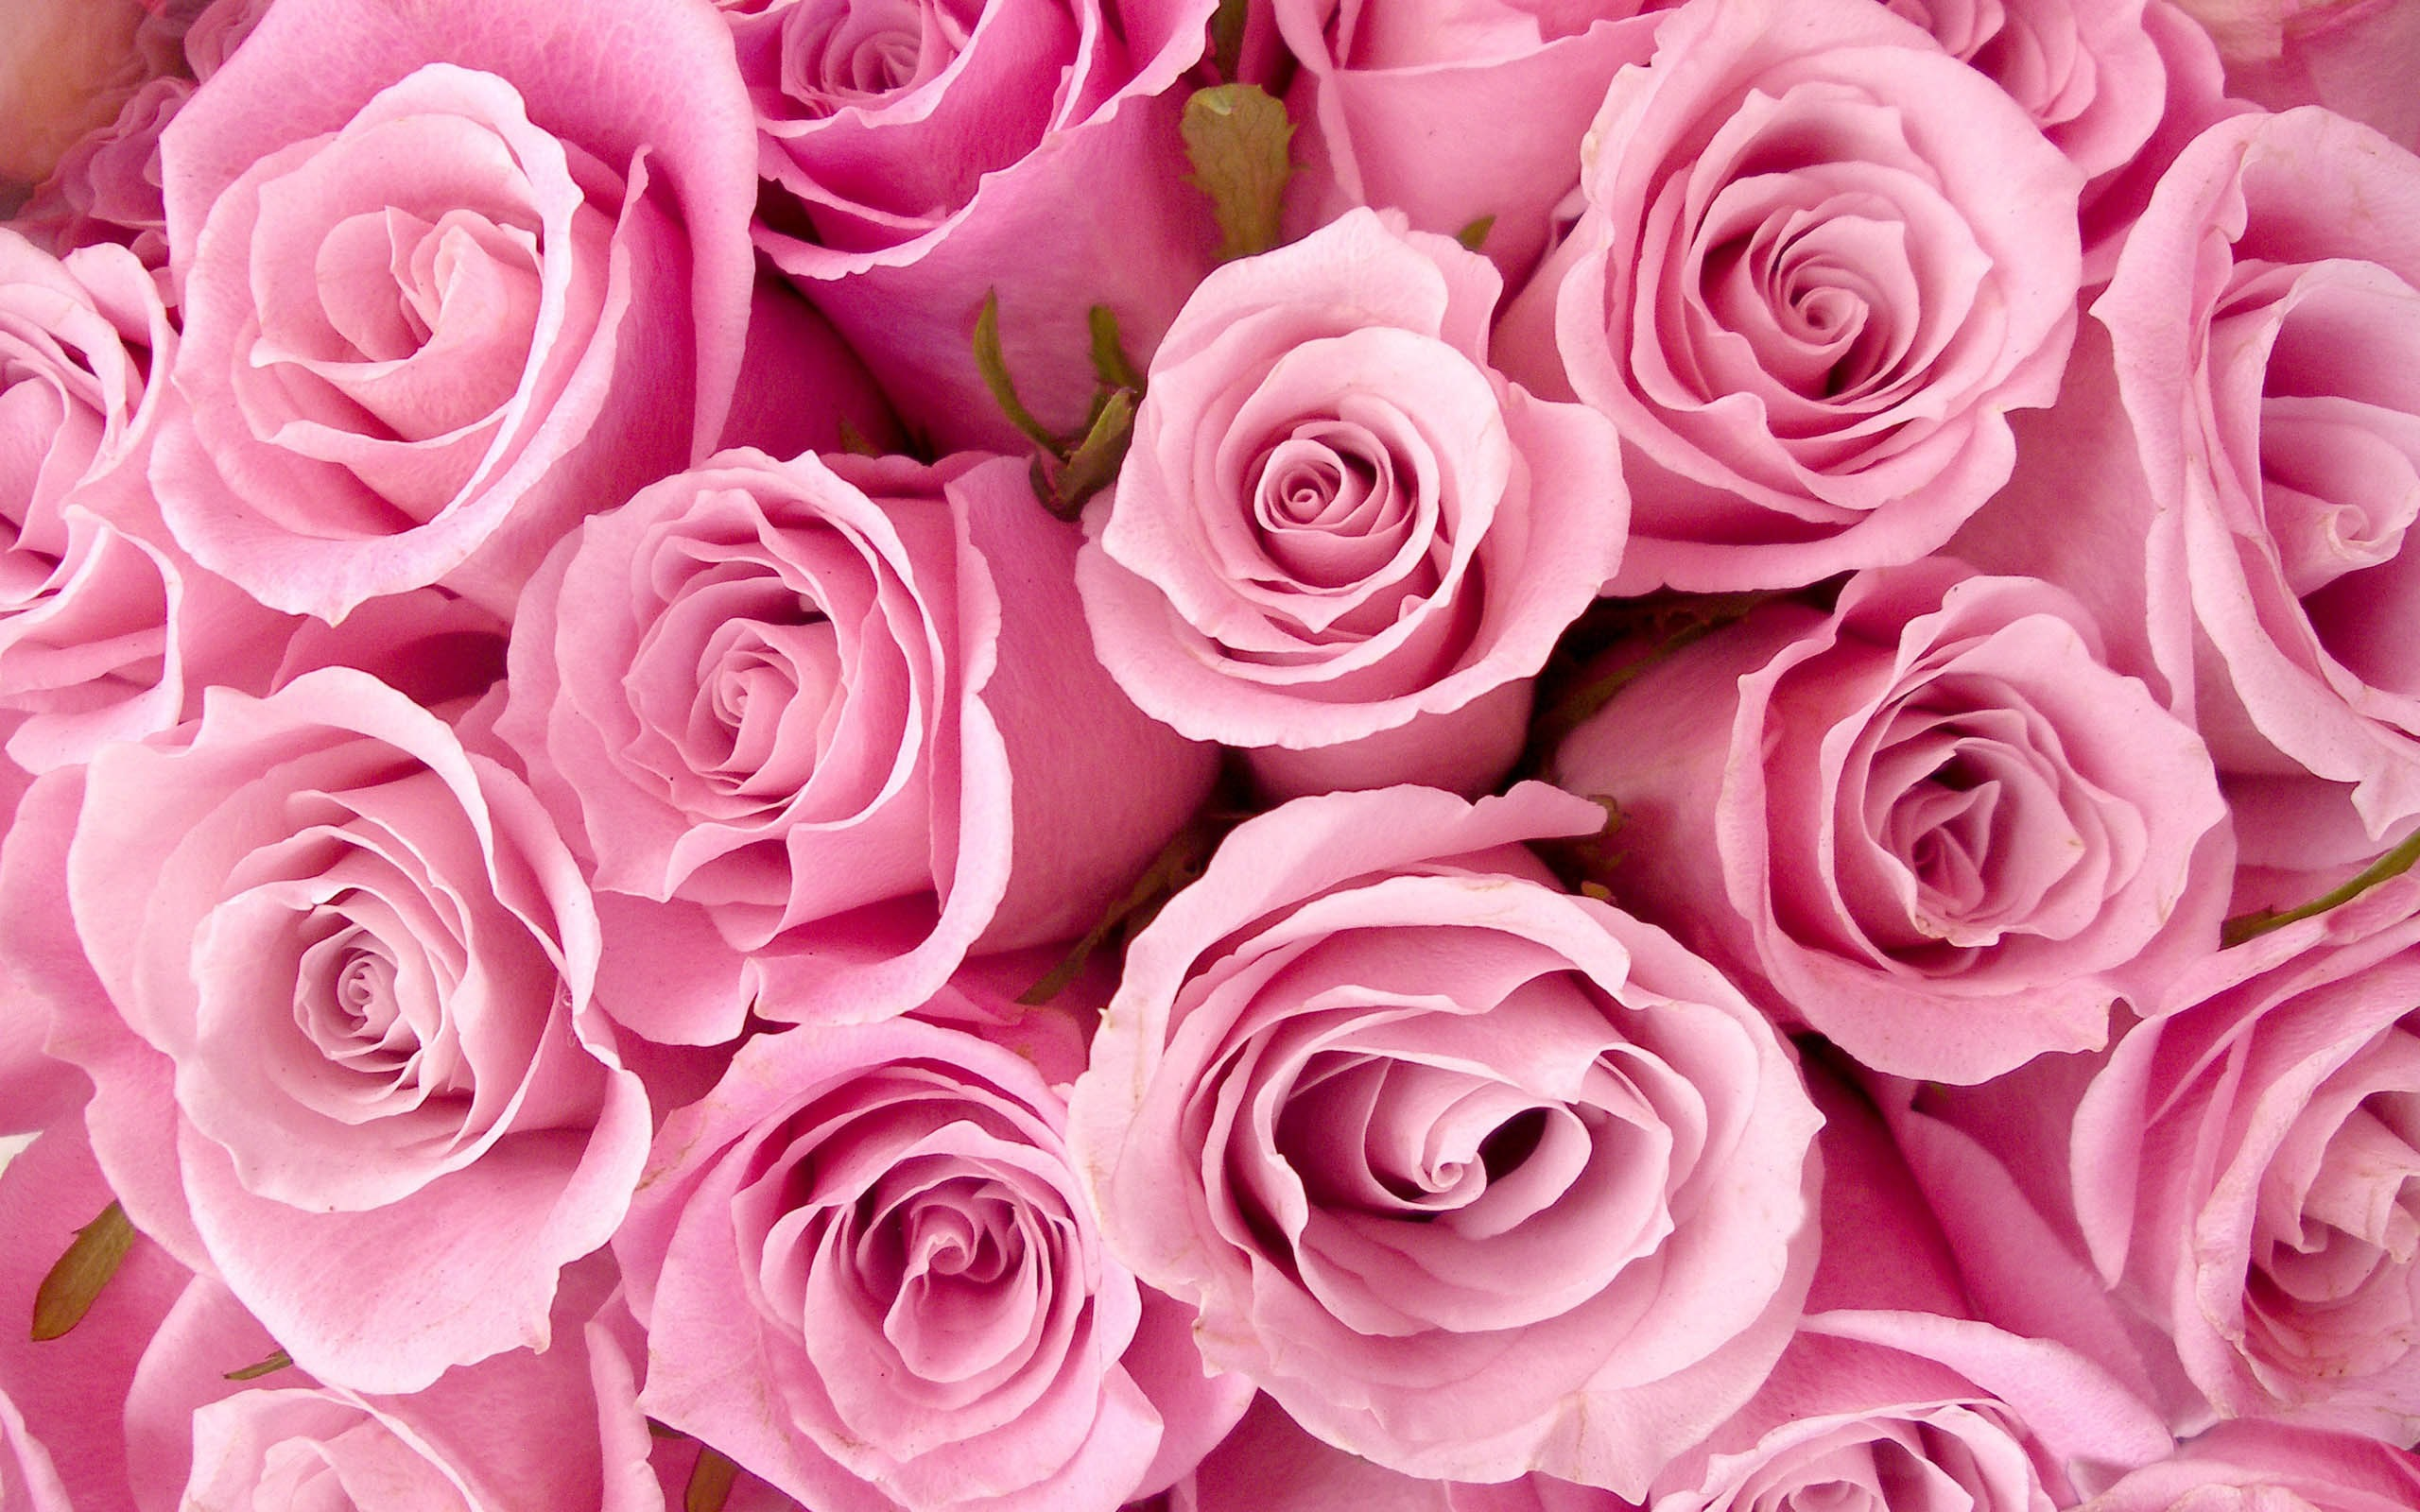 rose flower wallpaper tumblr 17819 2560x1600 px ~ hdwallsource